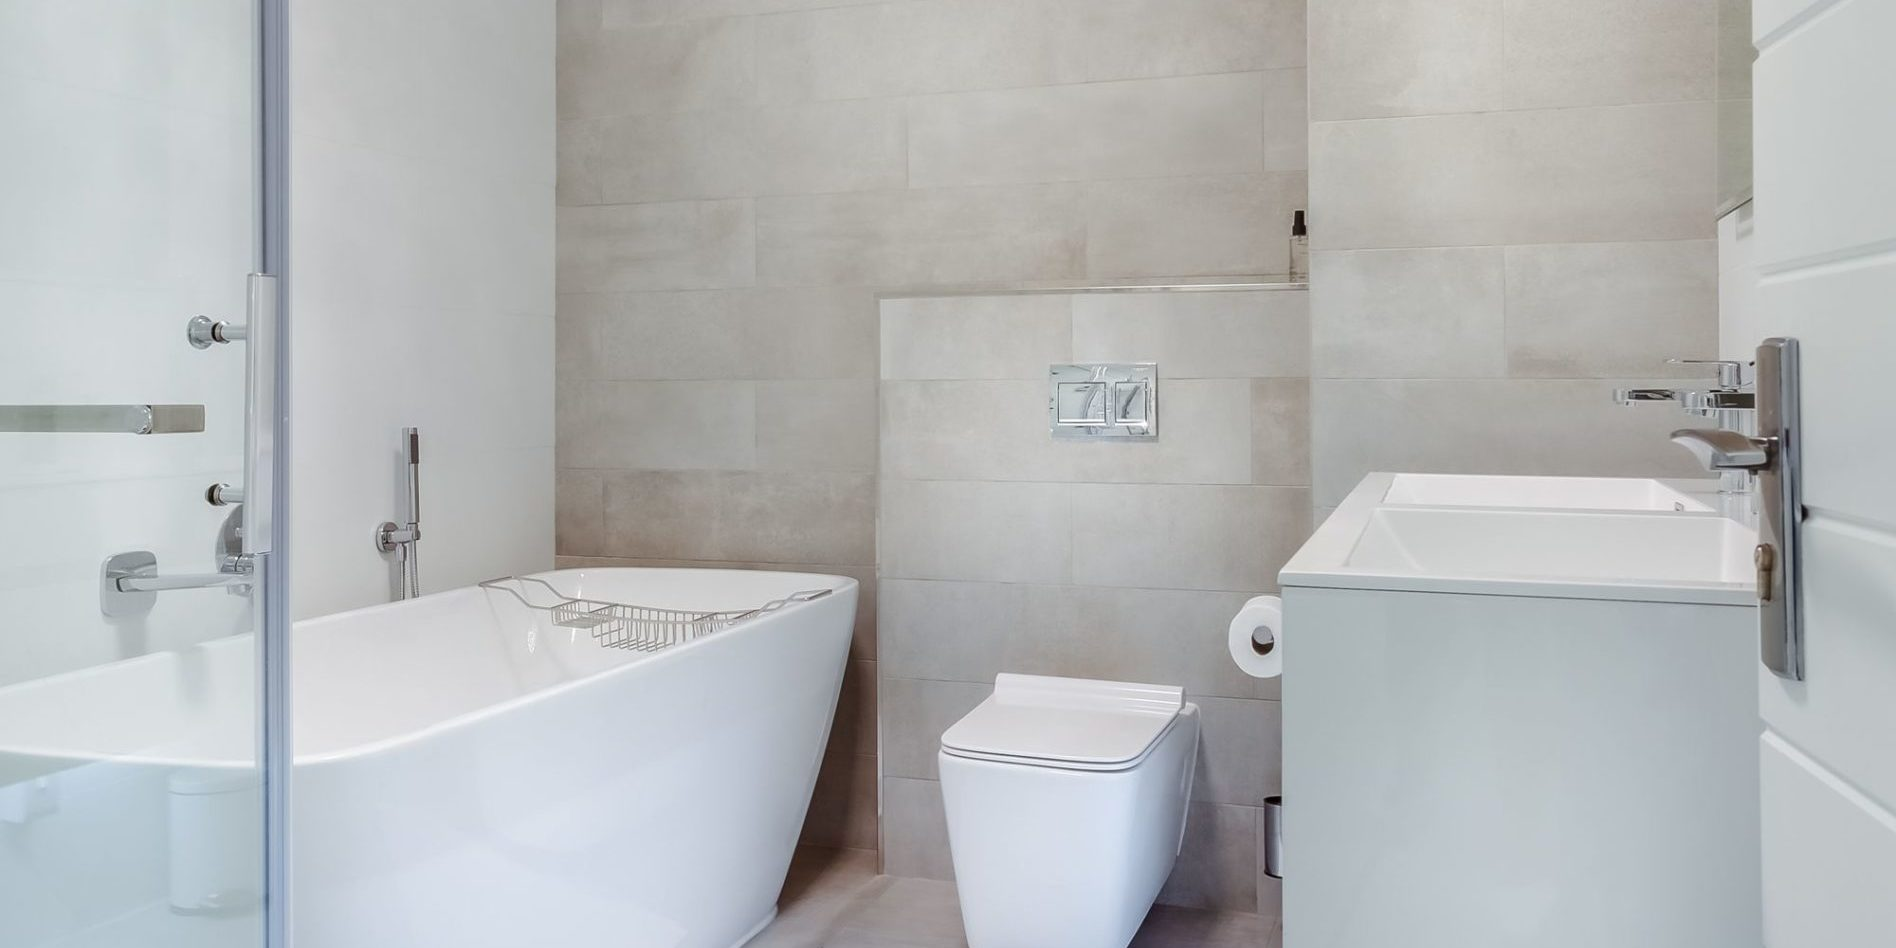 I had the privilege of photographing a recently renovated apartment on the Cape Coast and this is an image of  an en-suite bathroom lit by it's skylight.